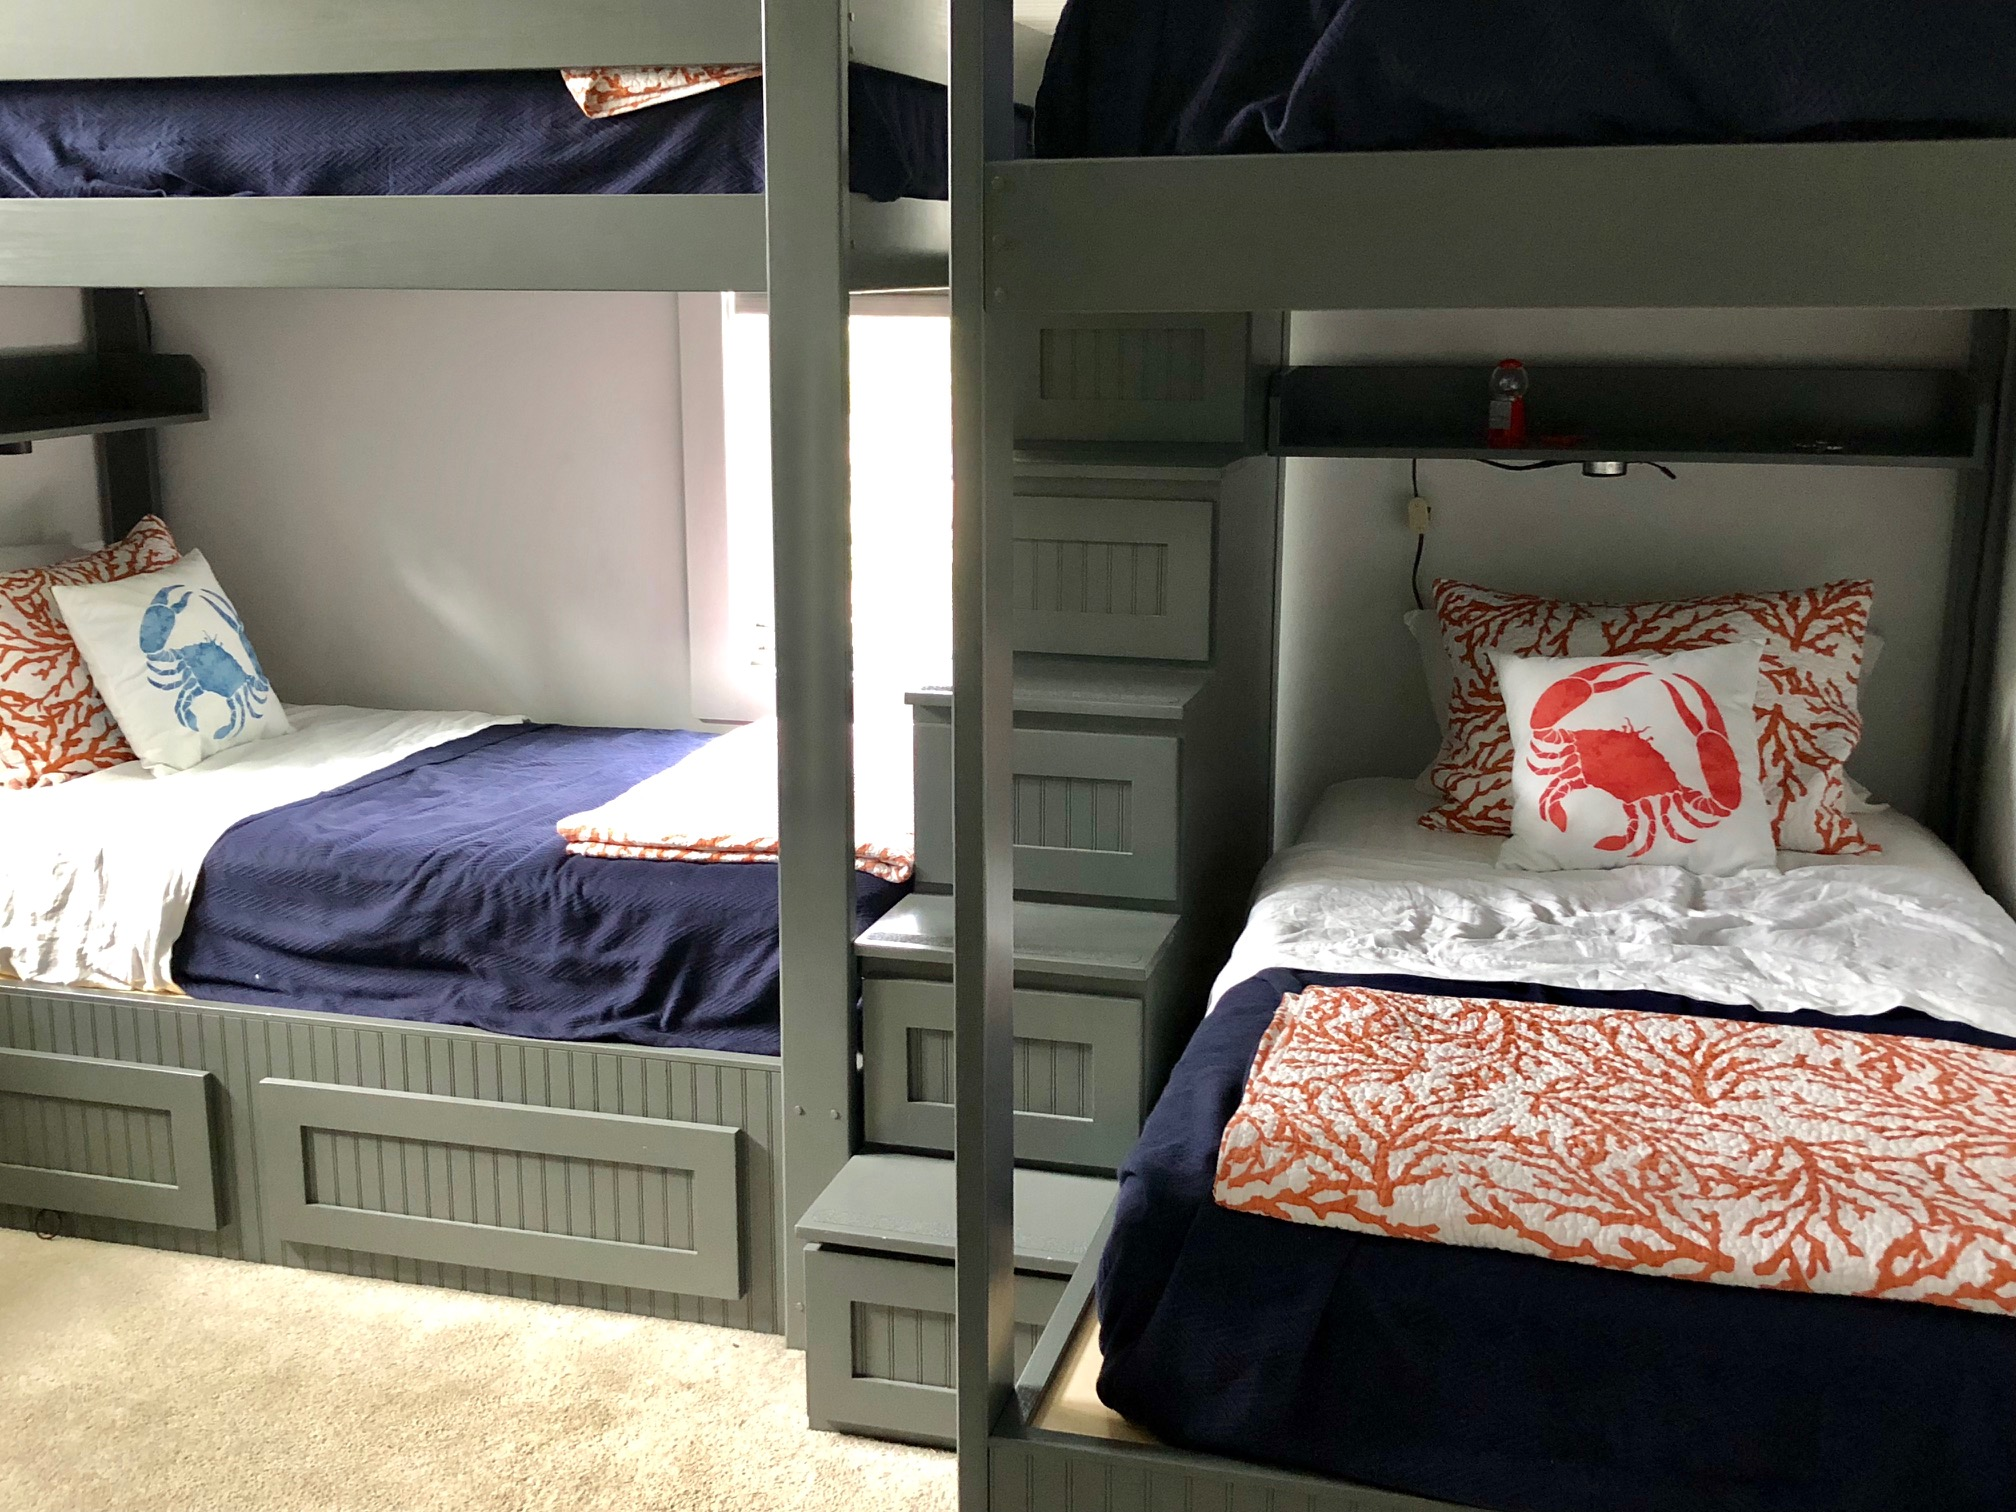 Upstairs is a bunk room with six twin beds.